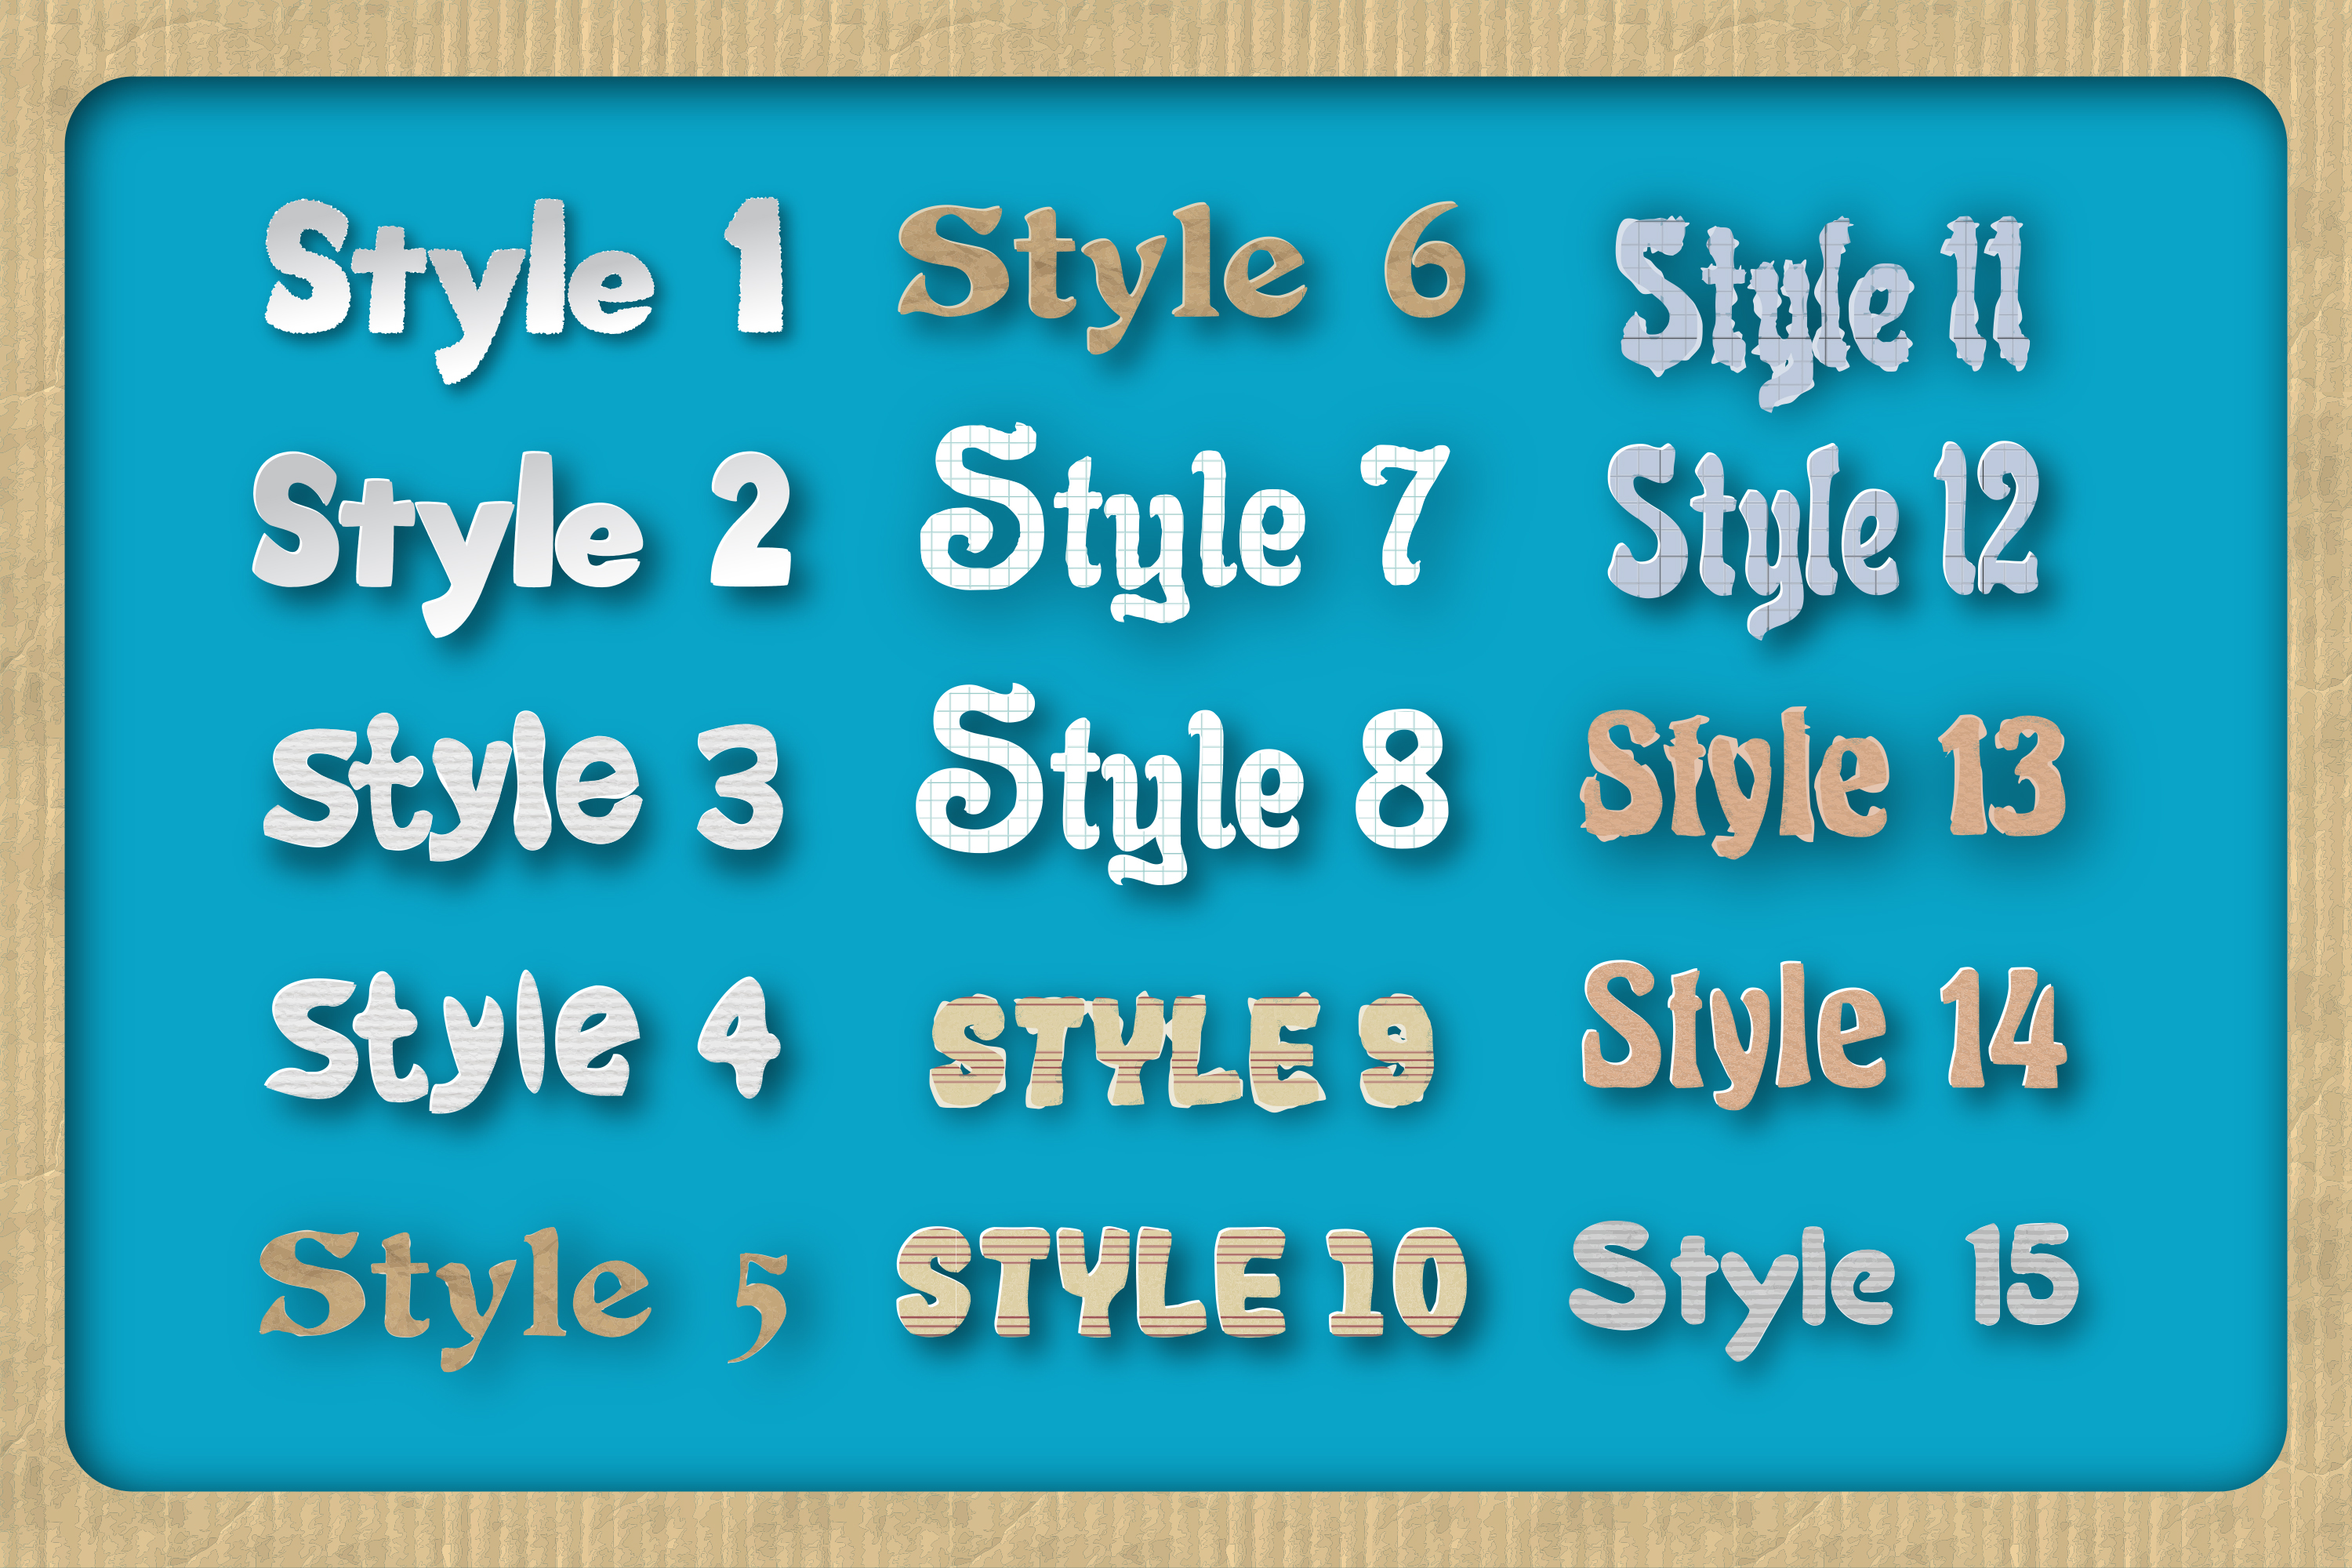 44 Paper Adobe Illustrator Graphic Styles example image 2